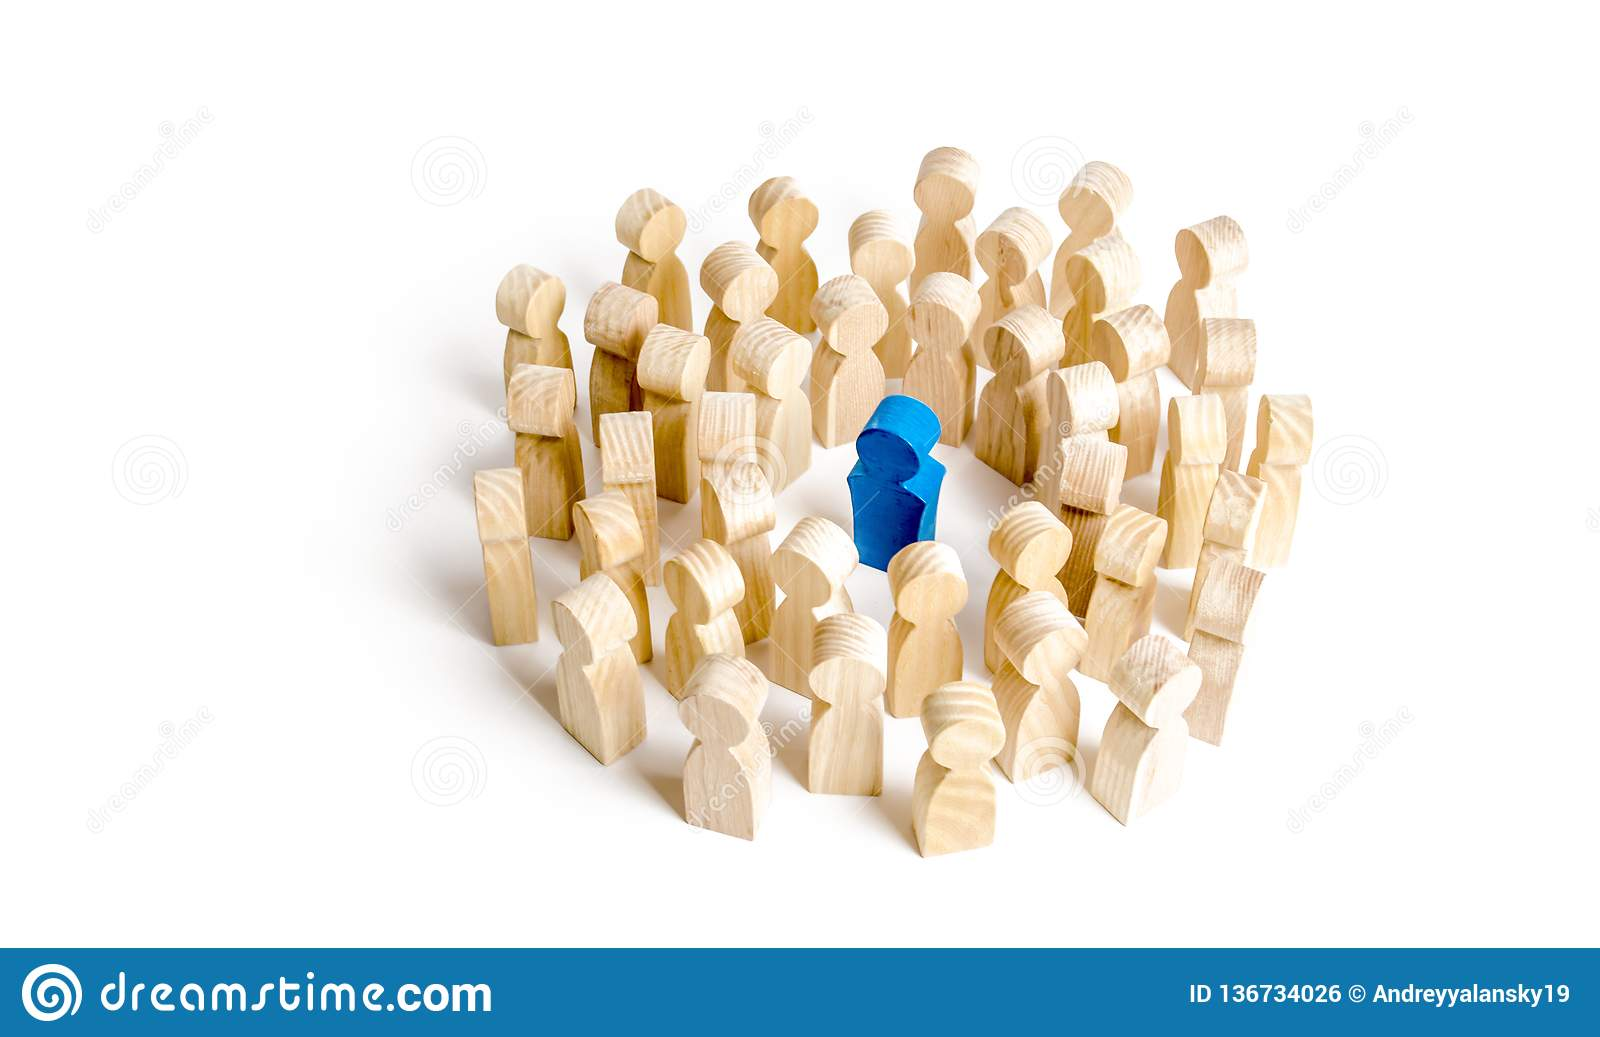 Blue figure leader stands at the head of the crowd. Business concept of leader and leadership qualities